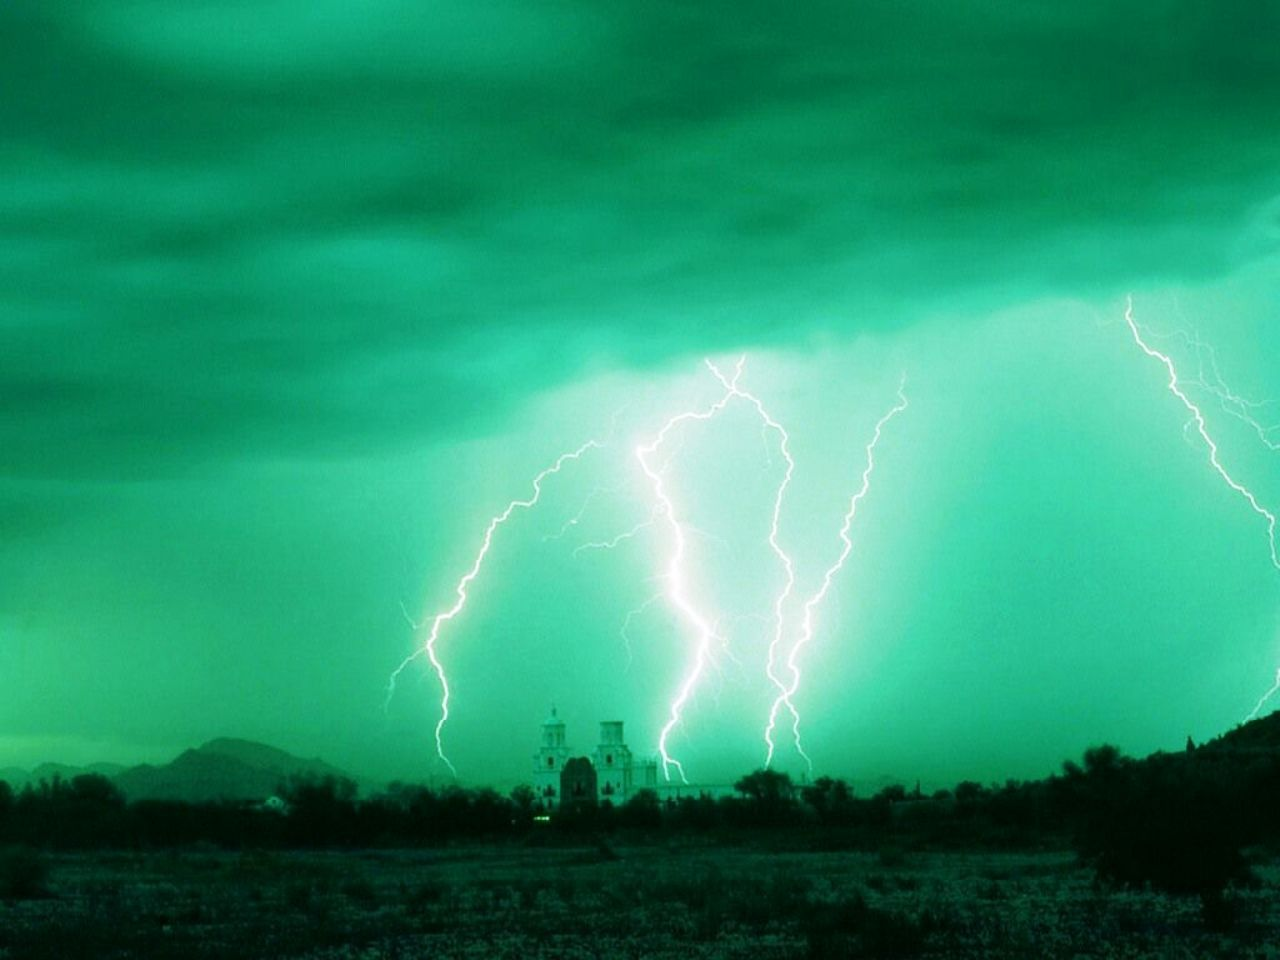 Lightening green background